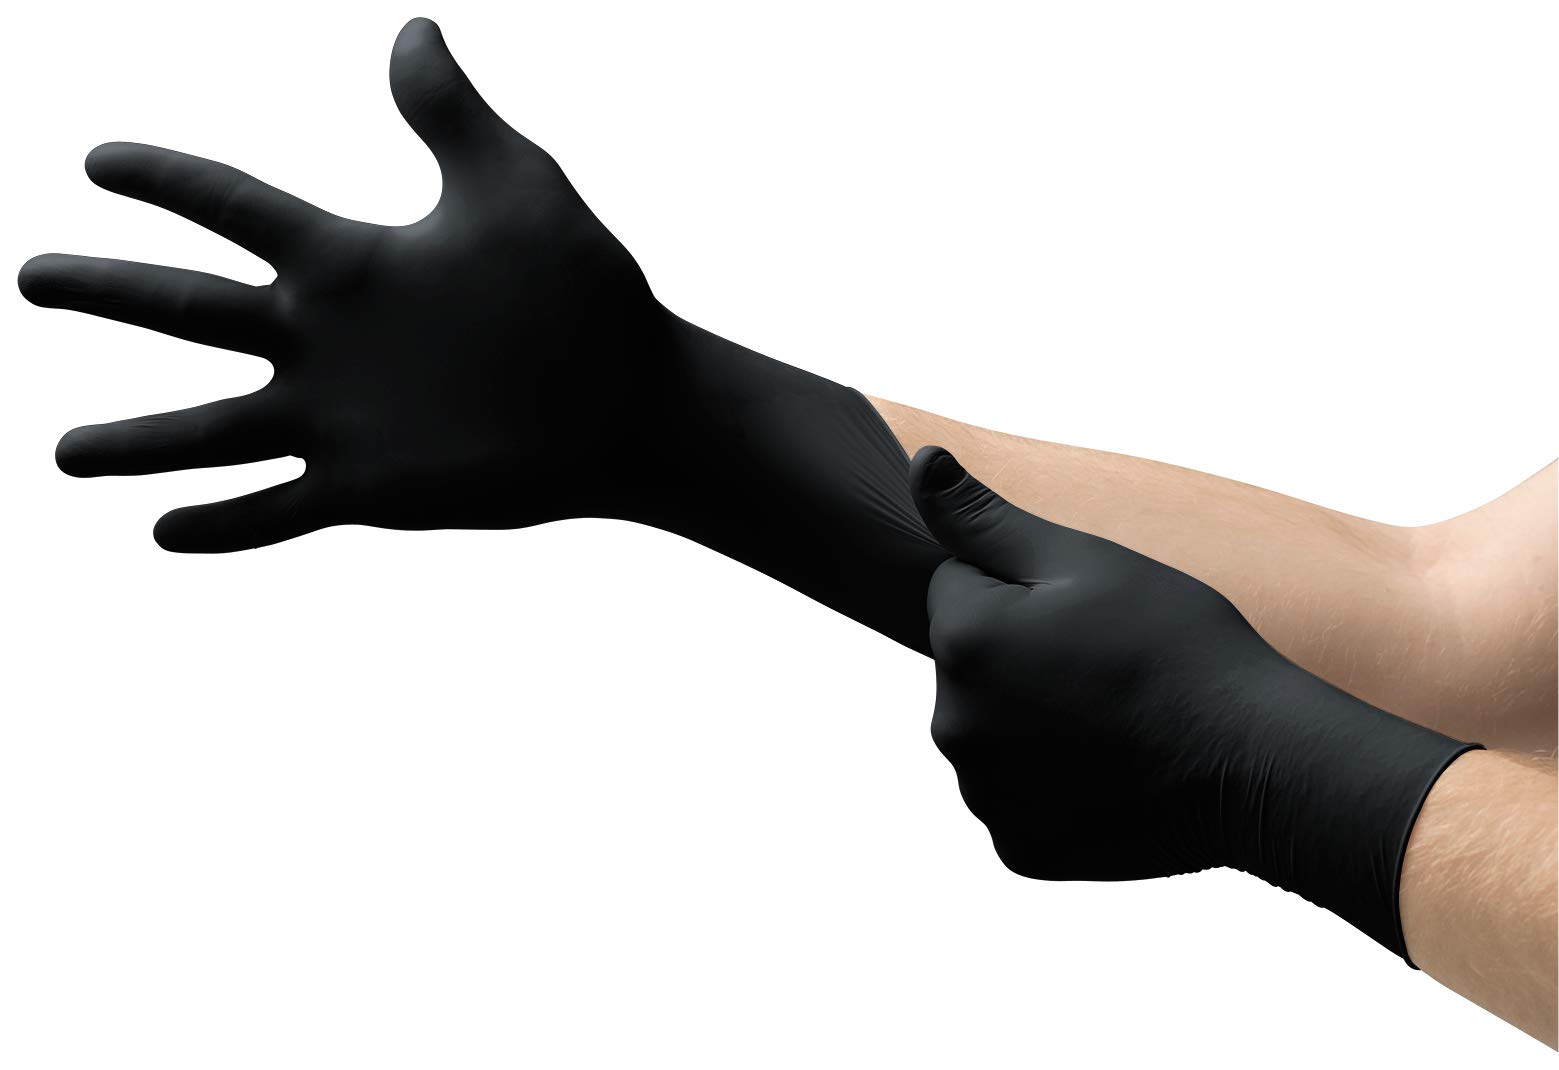 Microflex MK-296 Black Disposable Nitrile Gloves, Latex-Free, Powder-Free Glove for Mechanics, Automotive, Cleaning or Tattoo Applications, Medical / Exam Grade, Size X-Large, 100 Count (Pack of 10) by Microflex